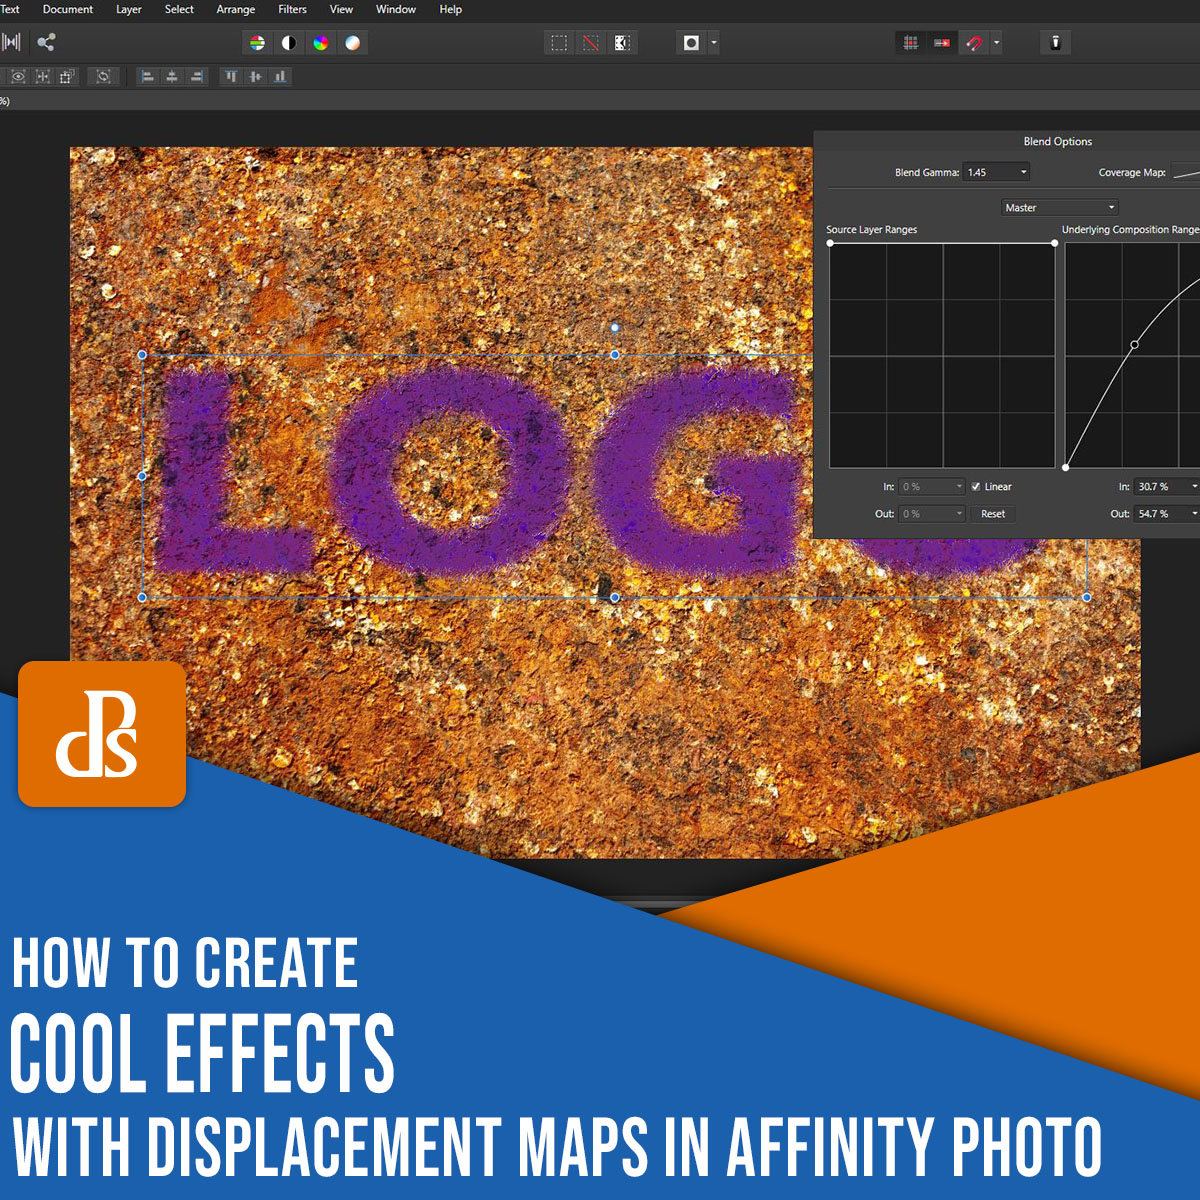 create cool effects with displacement maps in Affinity Photo